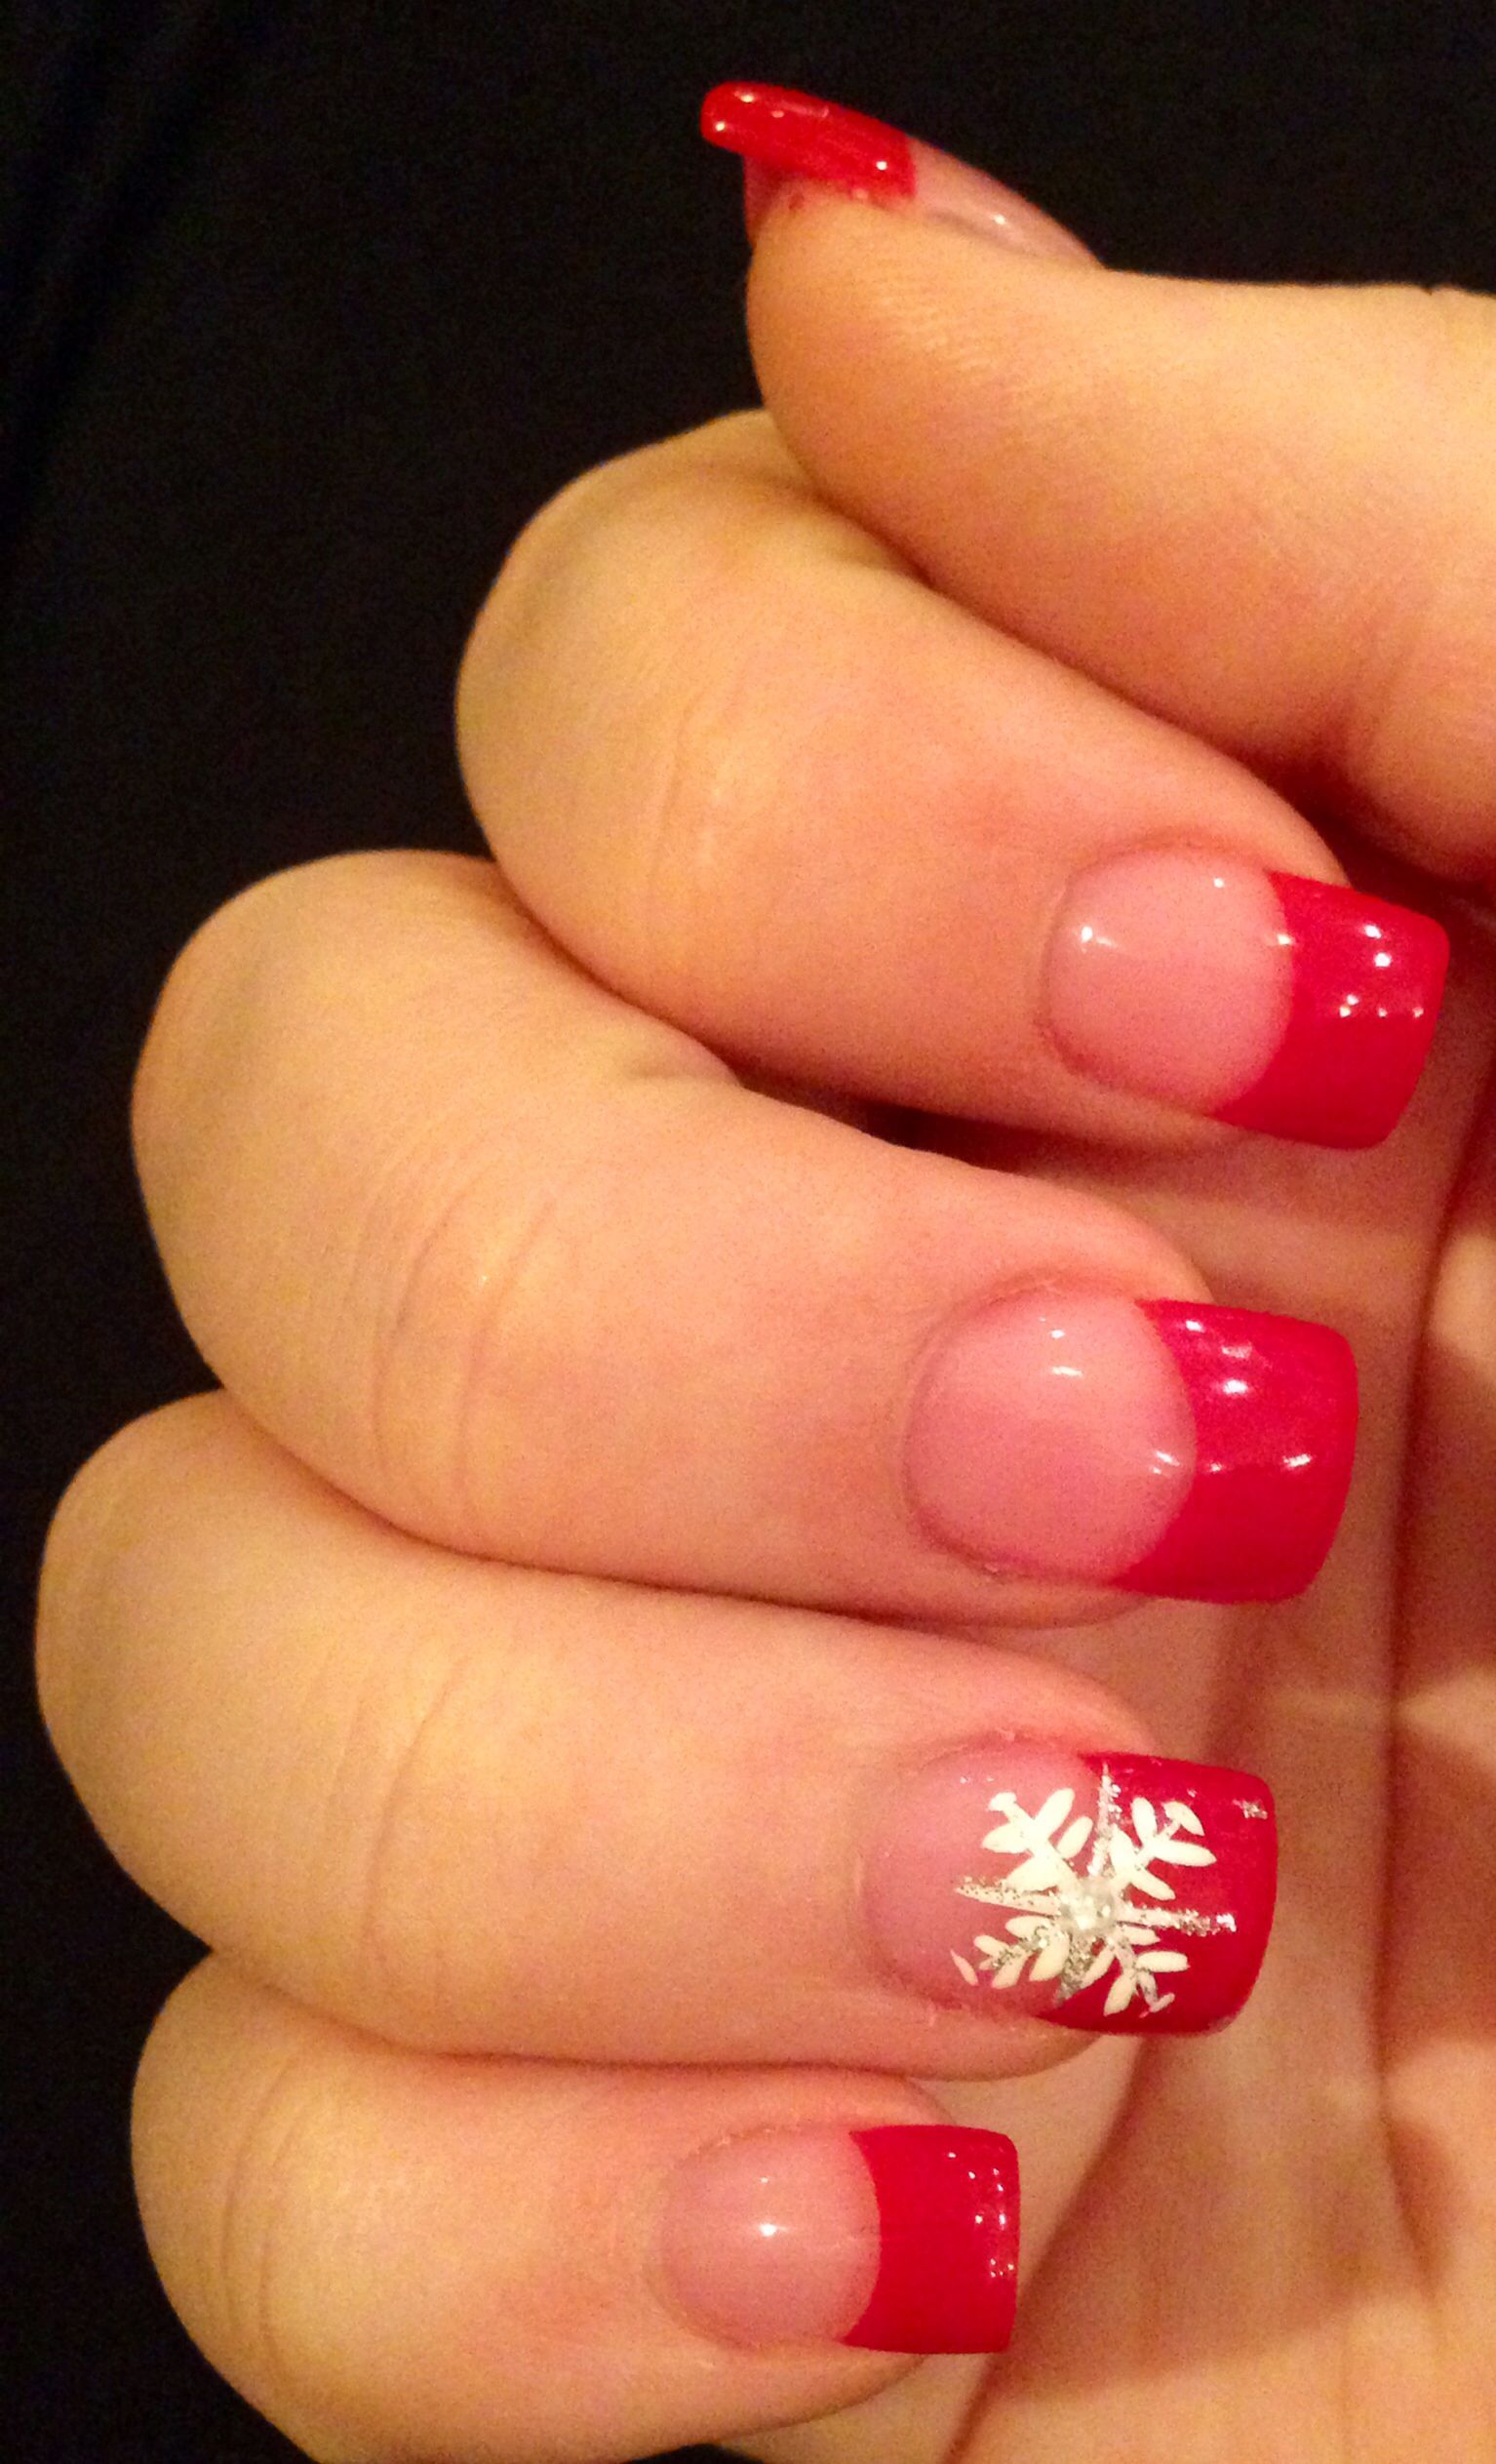 Christmas nail art French manicure red with white snowflake acrylics